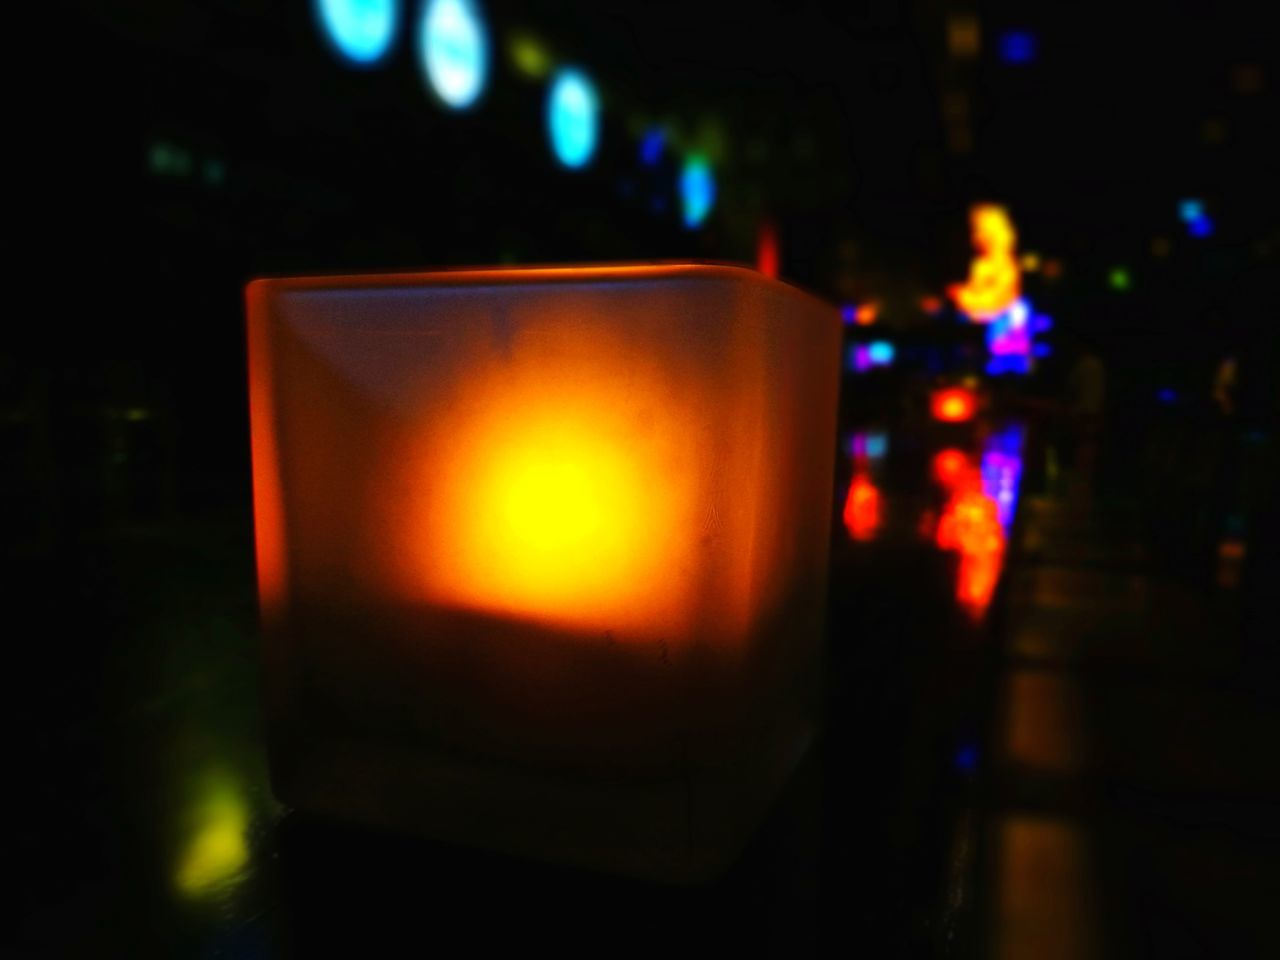 Night Nightphotography Night Photography Night Lights Drink Drinking Glass Drinks Drinking Drinking Wine Wine Alcohol Nightlife Close-up Candle Candles Candlelight Candle Light Candle Collection Chill Chilling Chillout